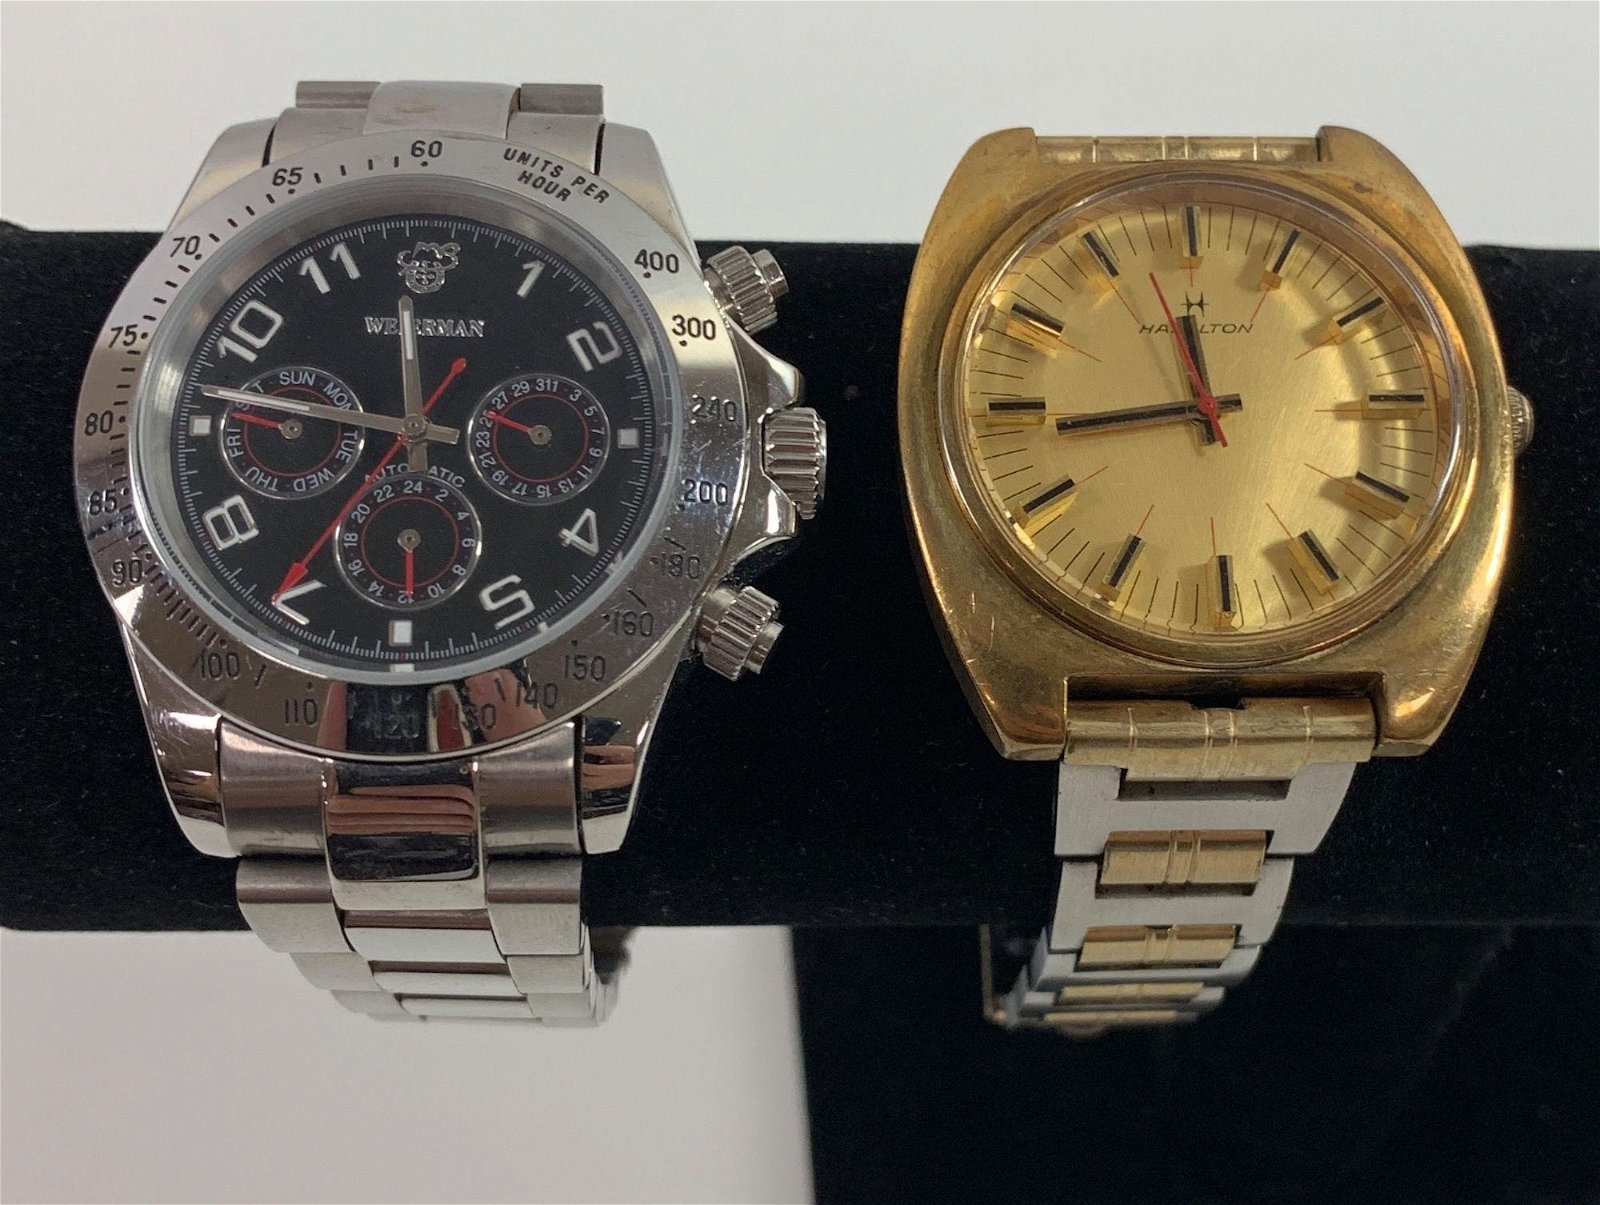 TWO WRIST WATCHES